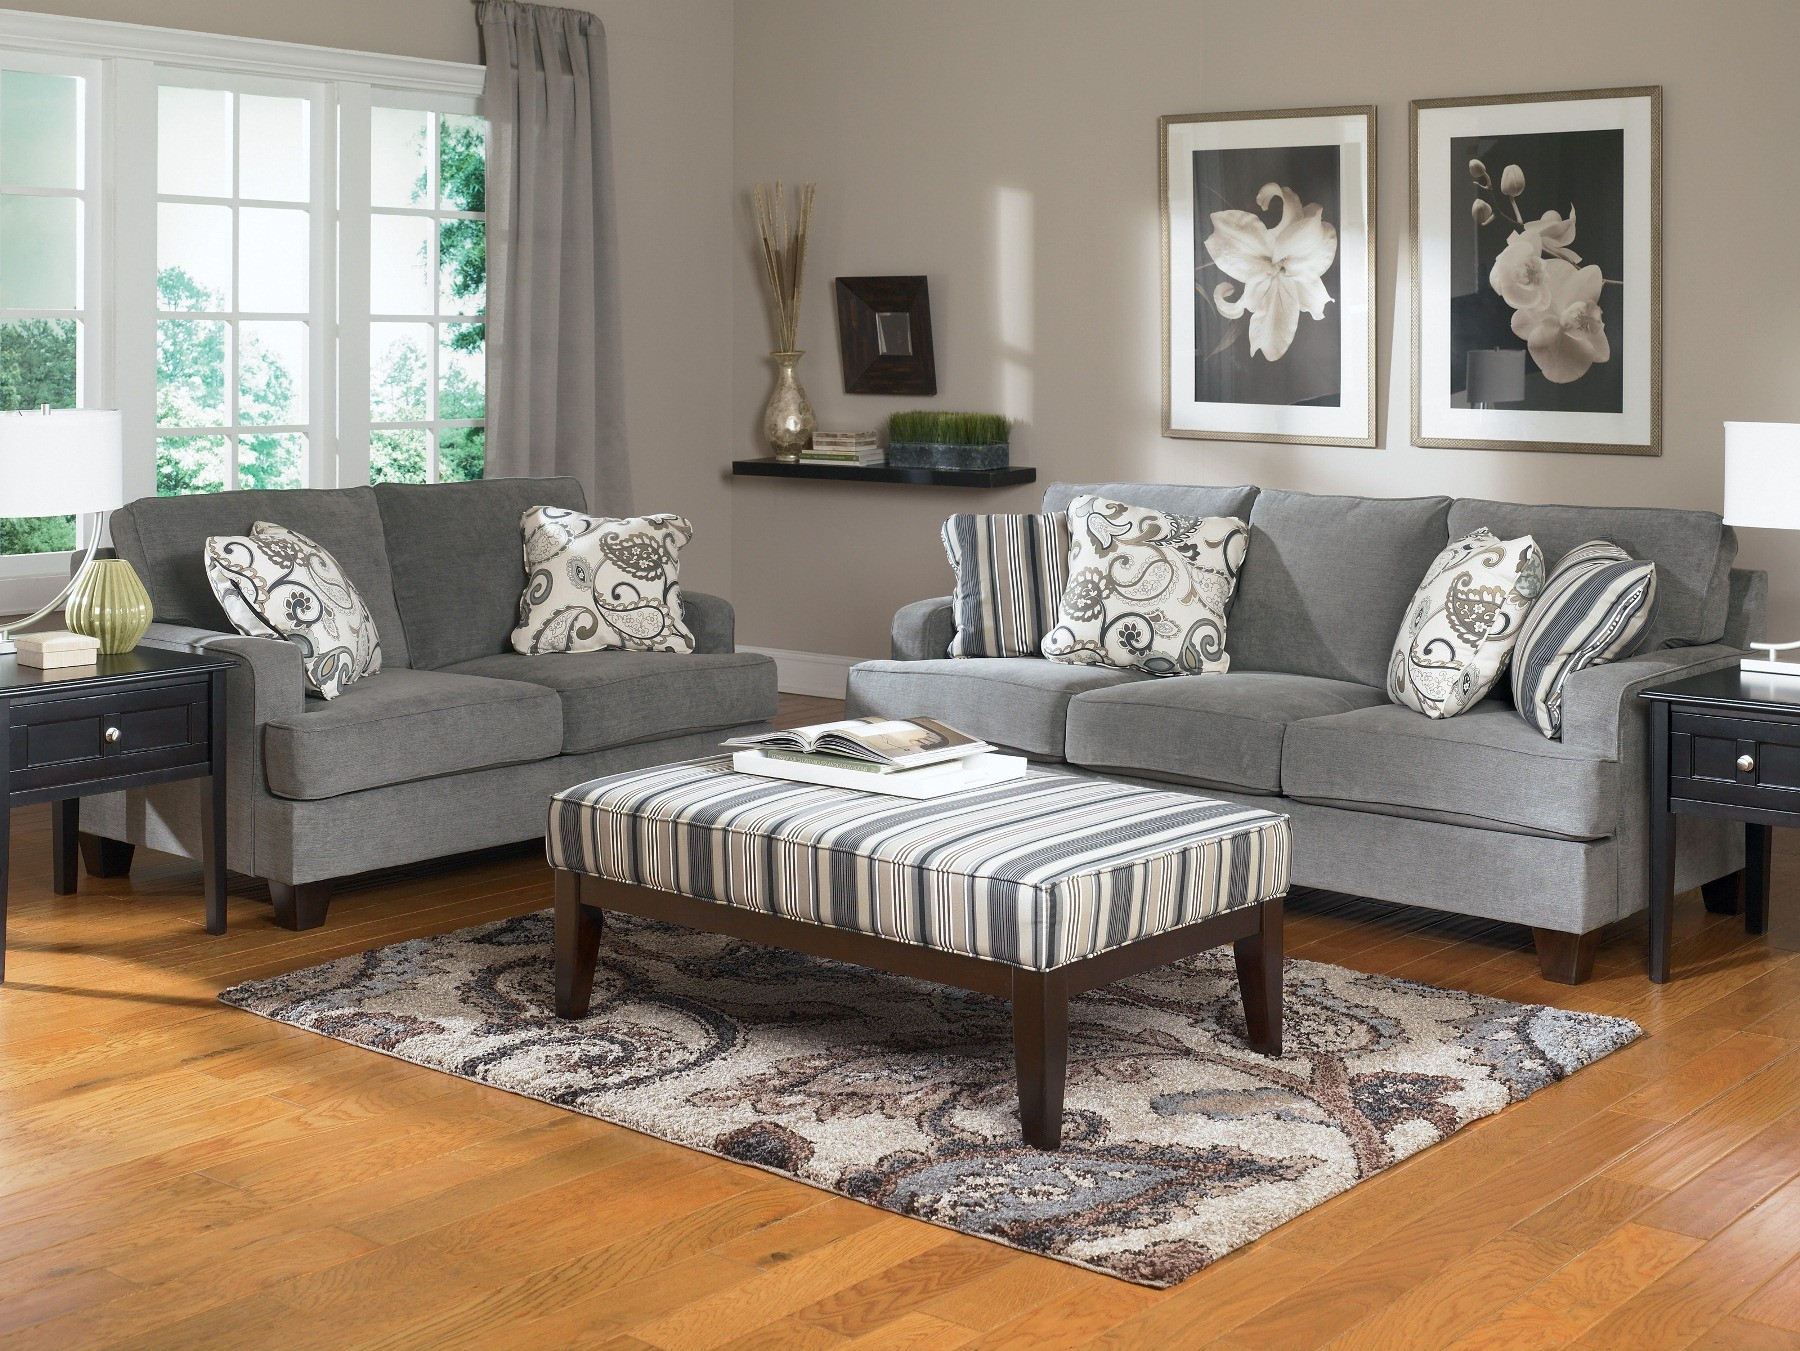 Staging The Living Room For Buyers Can Actually Help Sell Your Home Faster  And It Can Be Very Affordable!